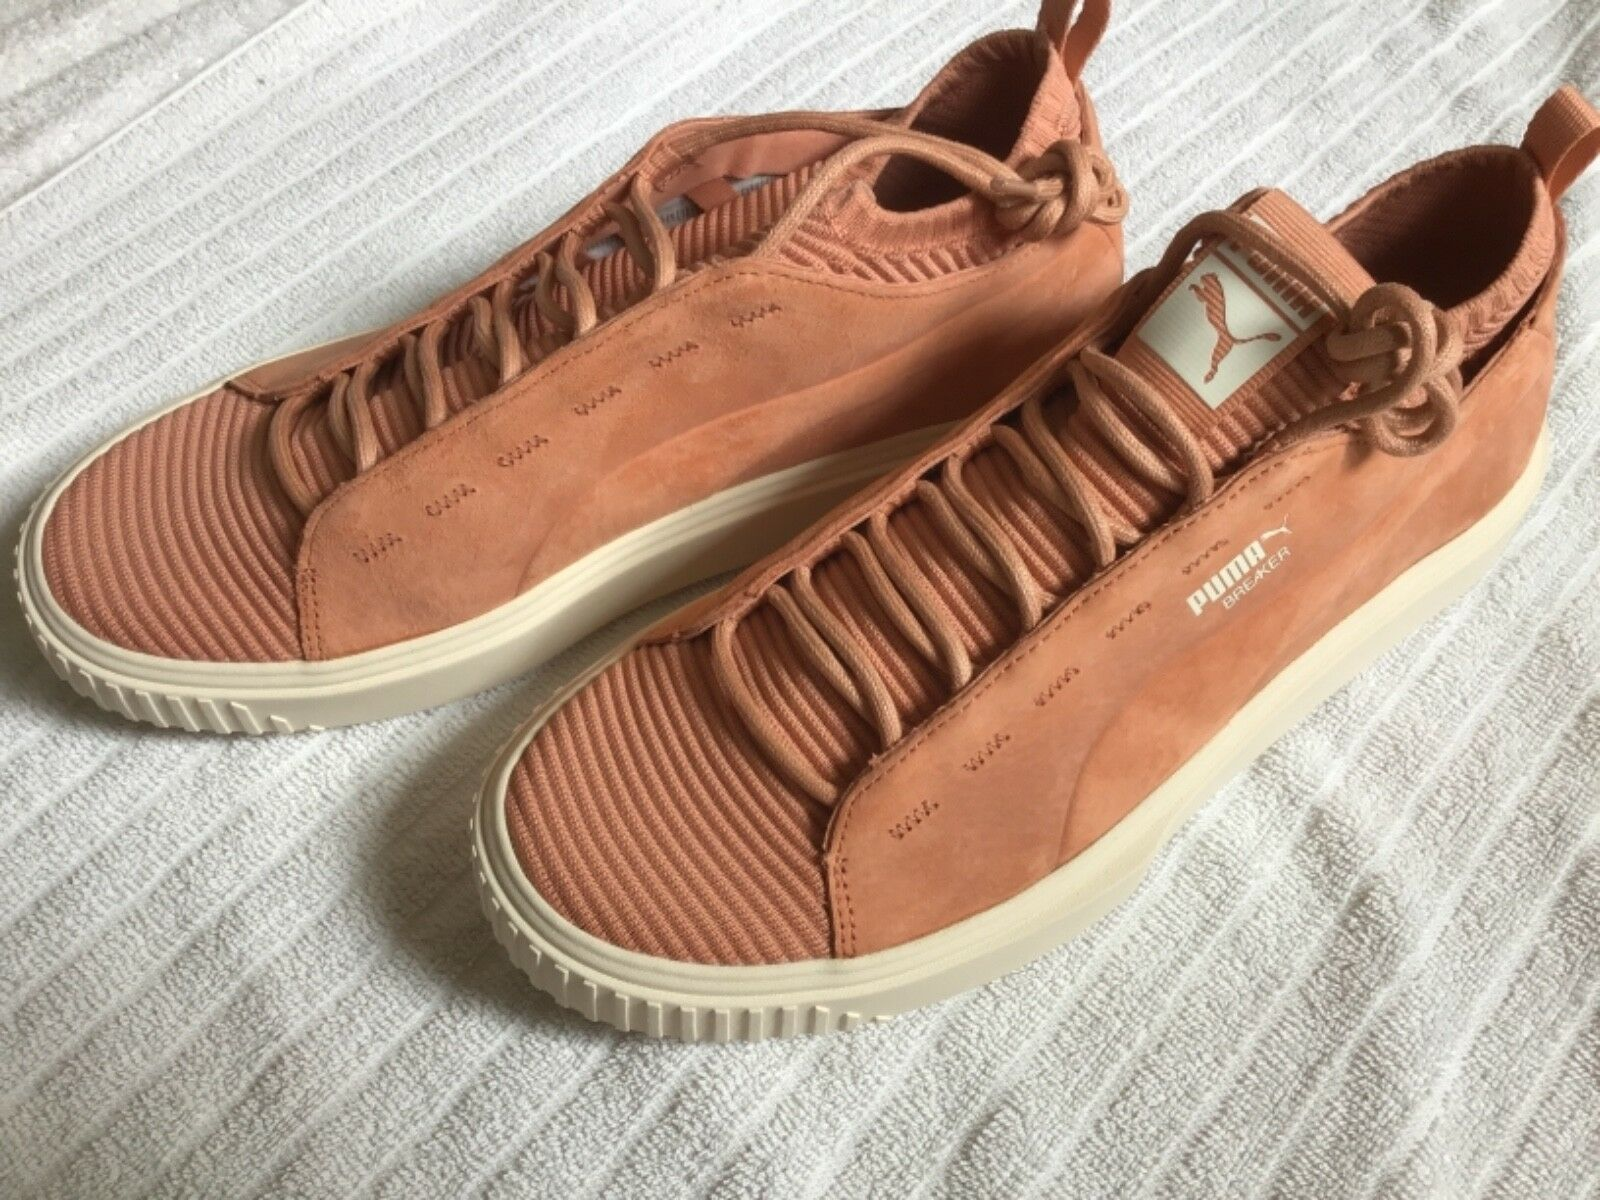 Puma breaker knit sunfaded low cut Homme  chaussures  Taille 11 muted clay